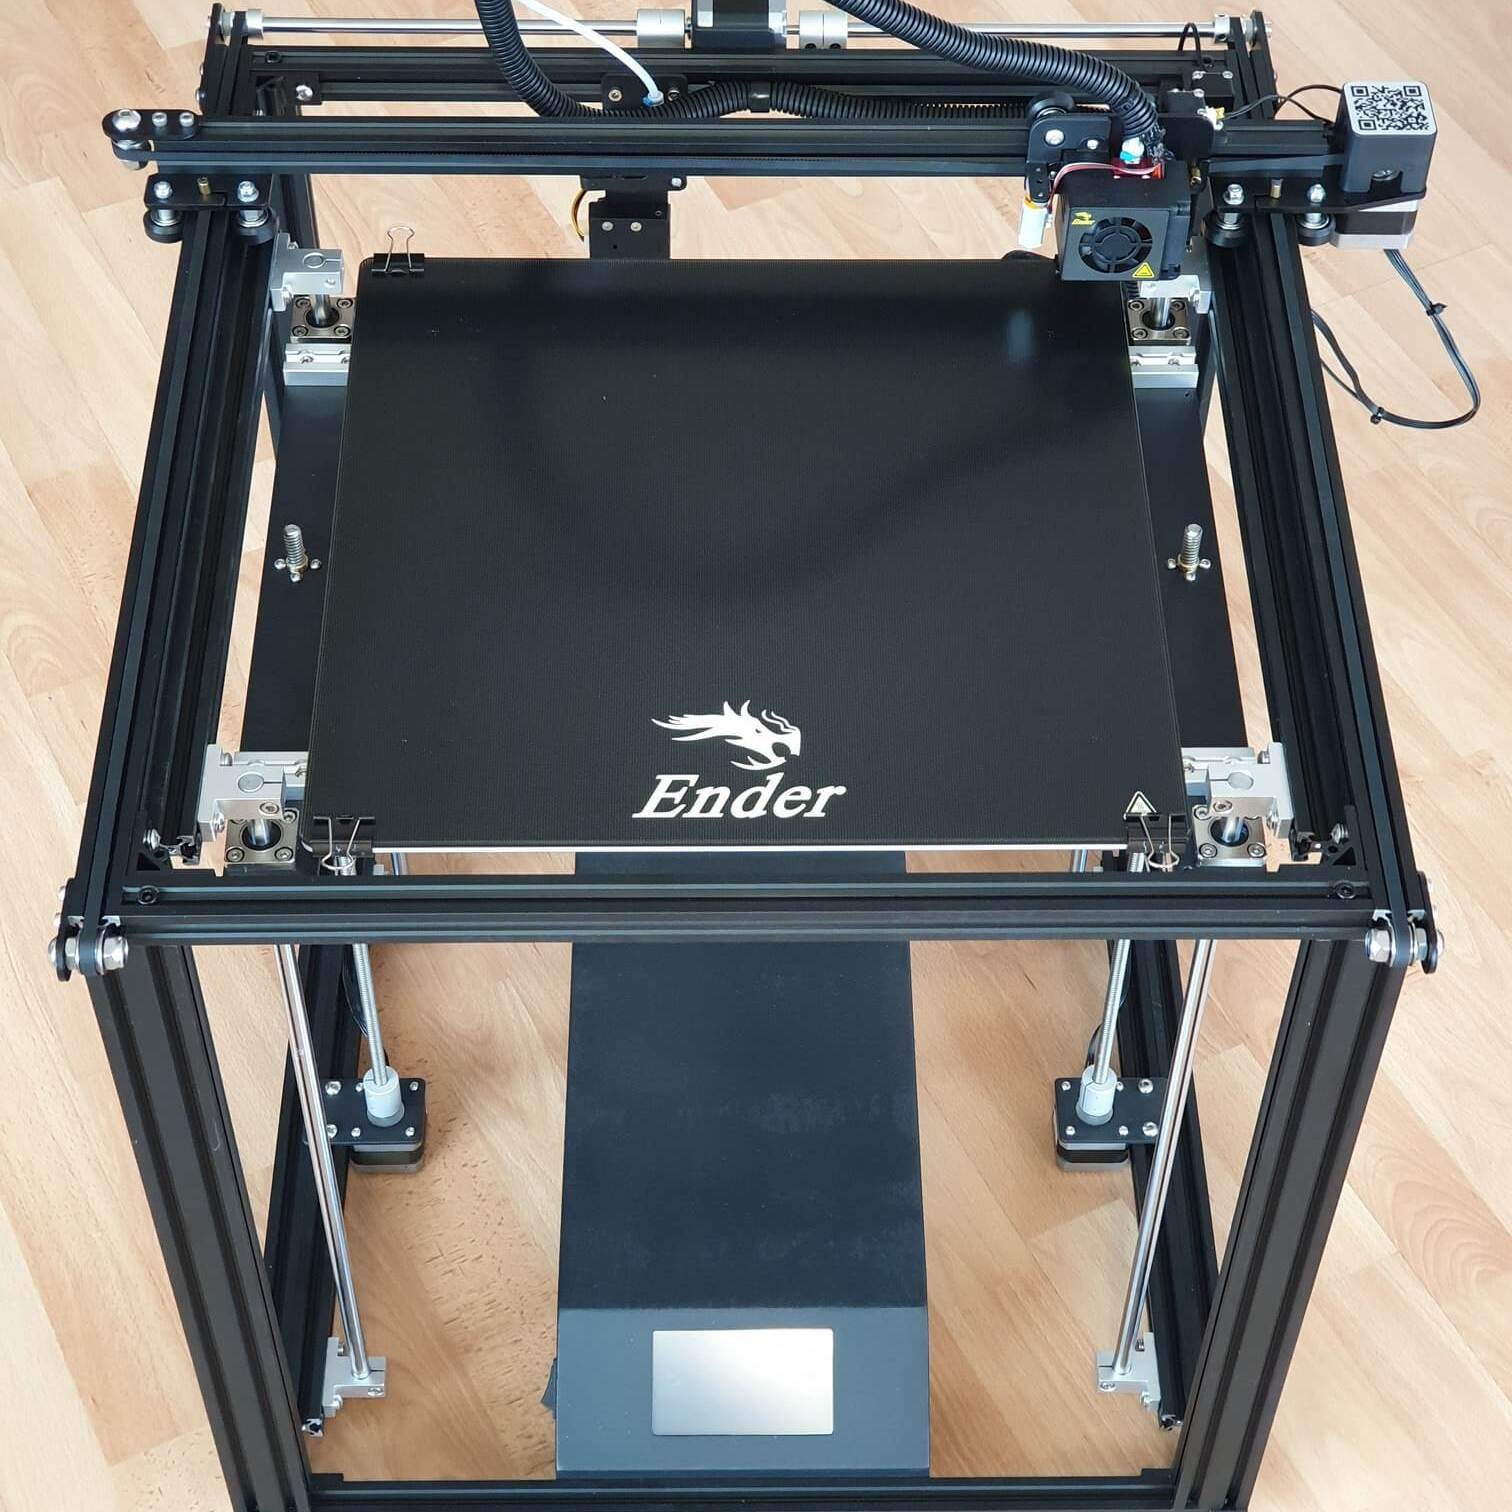 Creality Ender 5 review Assembled 2 | Creality Ender 5 Plus Review - Print Big!